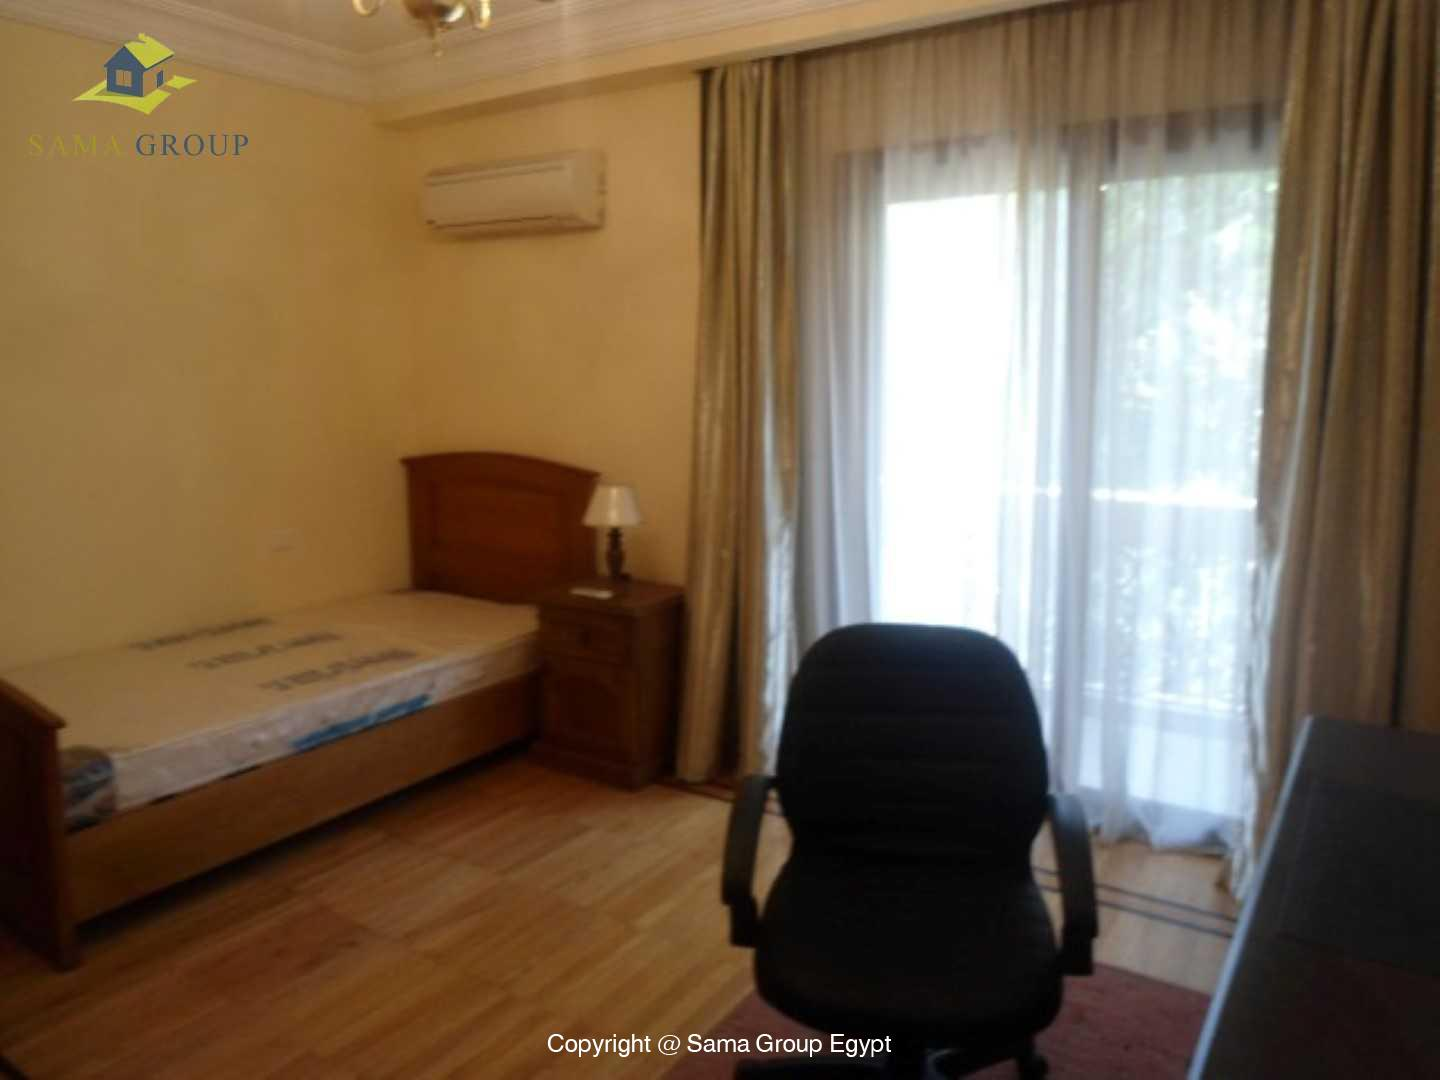 Modern Furnished Apartment For Rent In Maadi,Furnished,Apartment NO #2